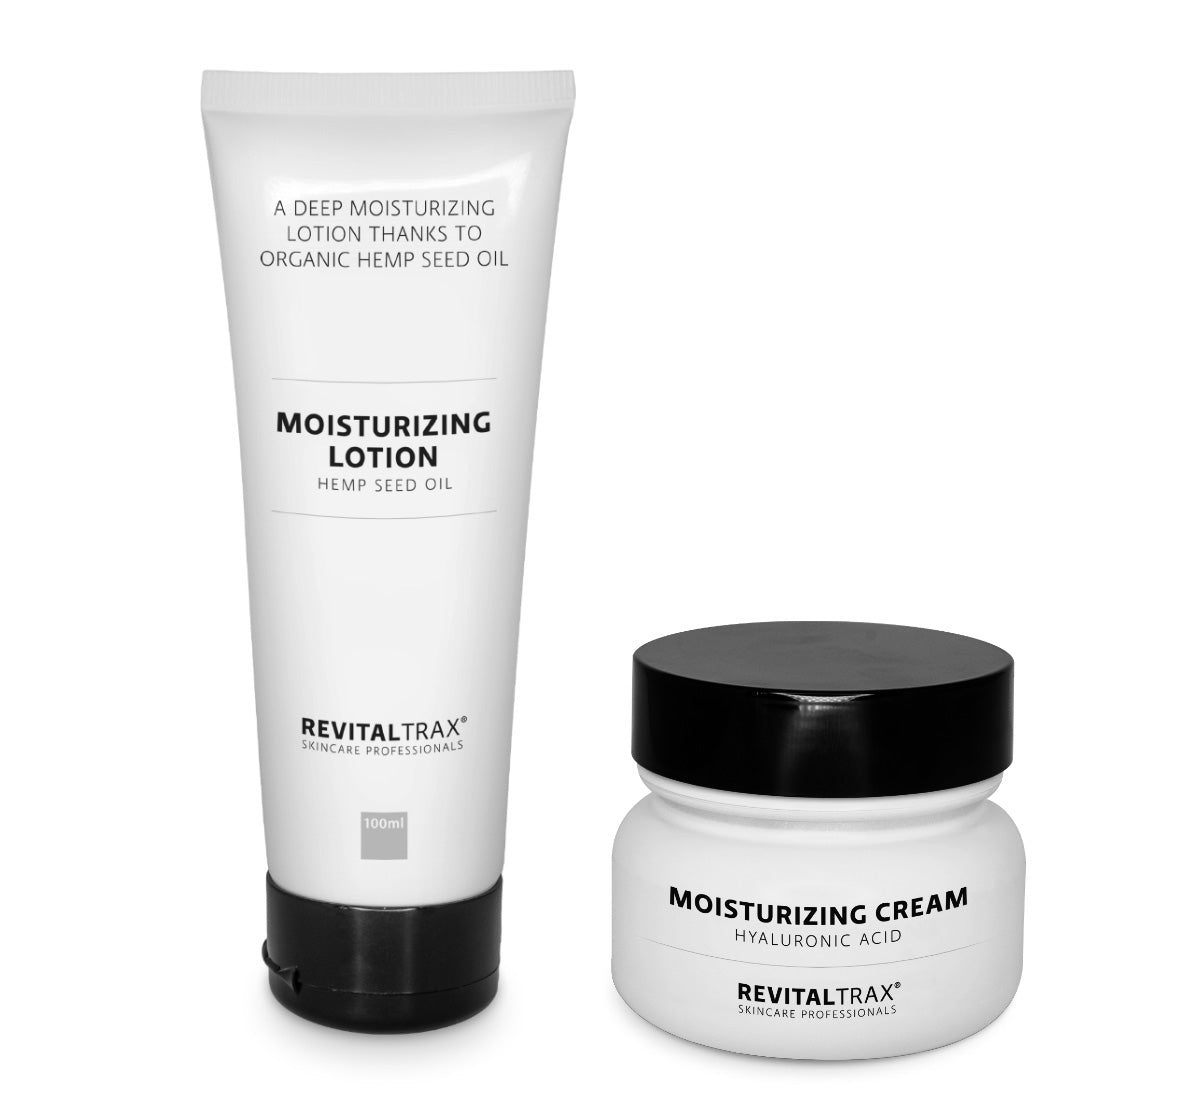 RevitalTrax Moisturizing Lotion and Moisturizing Cream